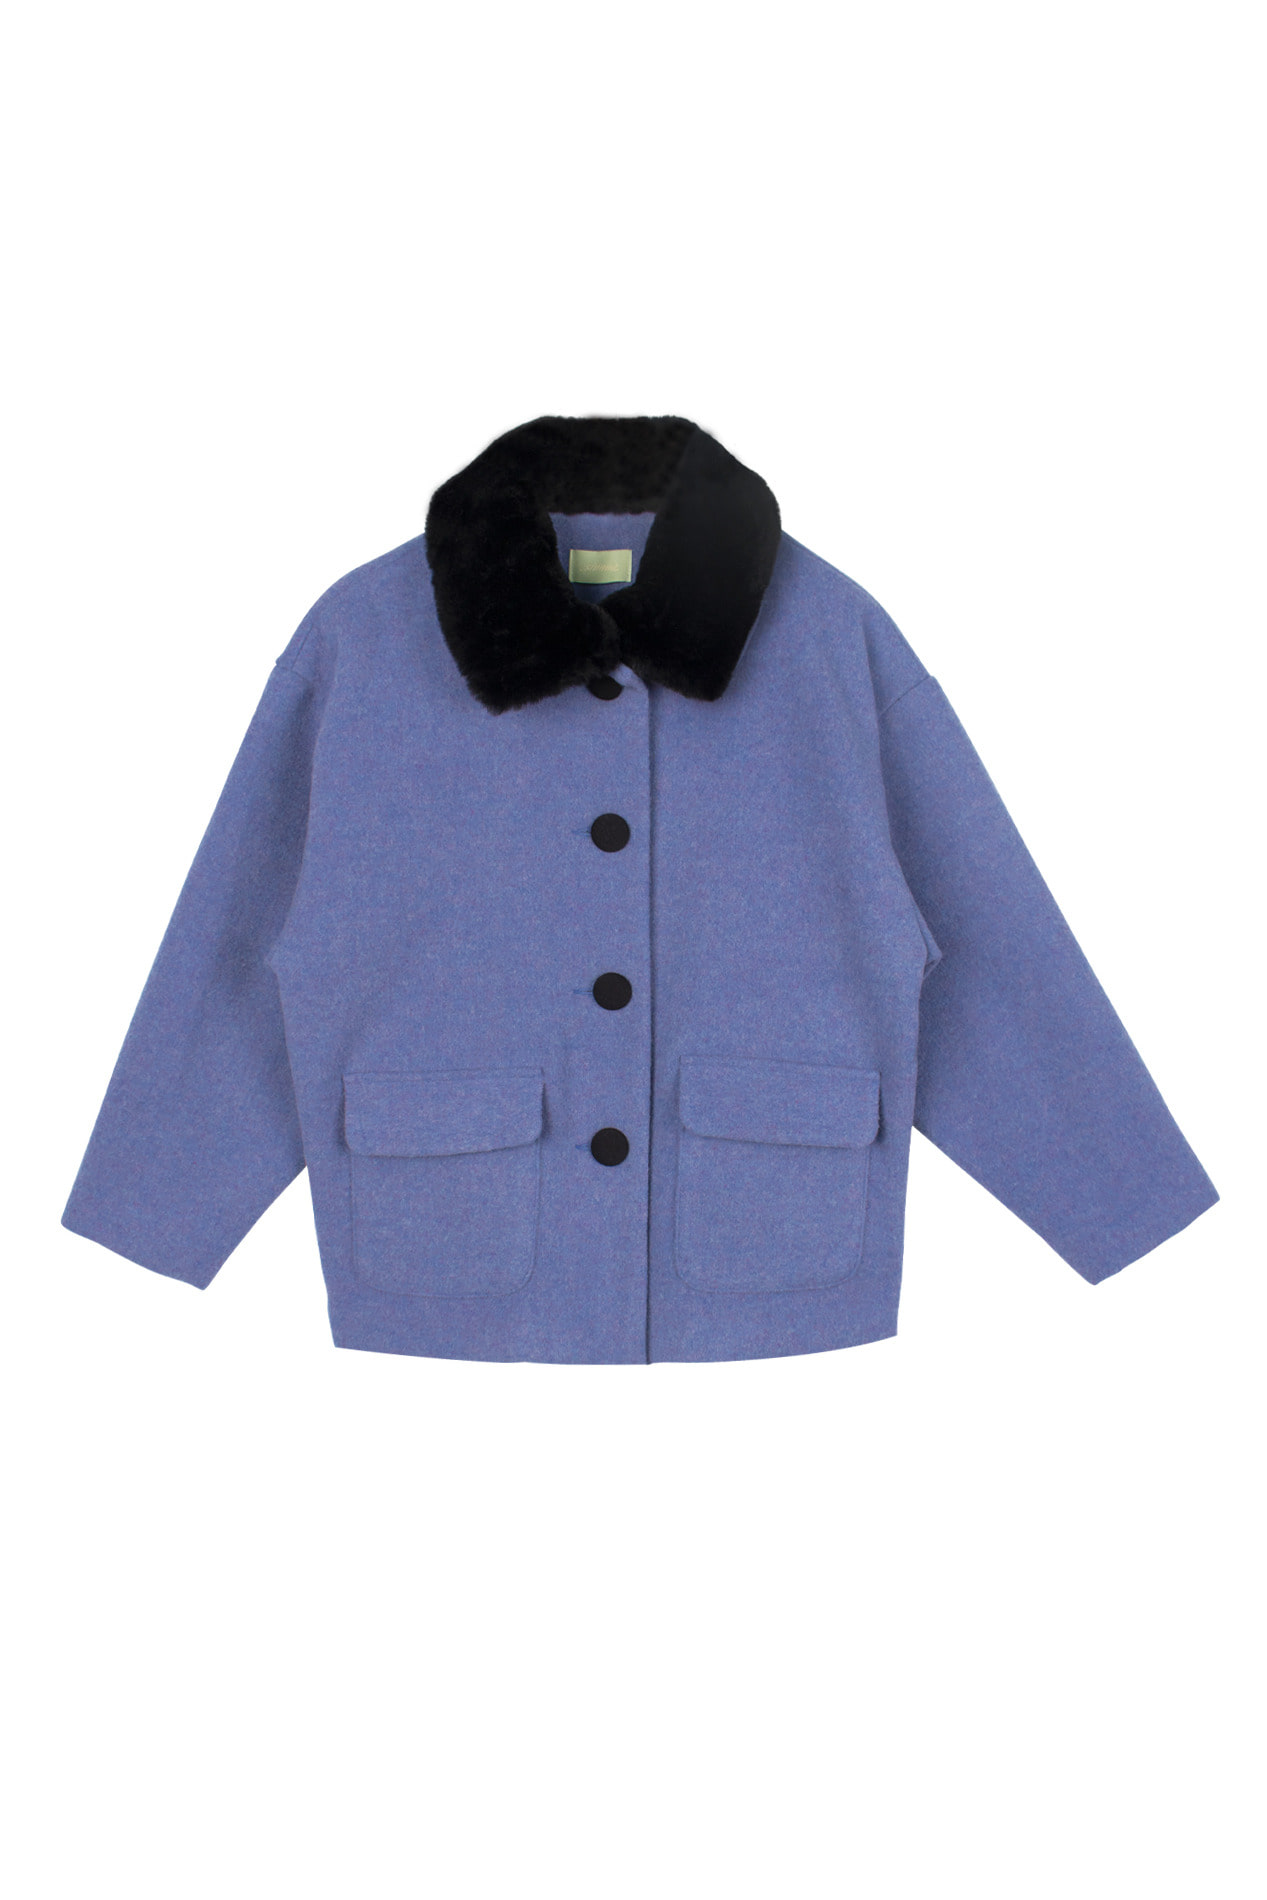 Blooming jacket(blue)